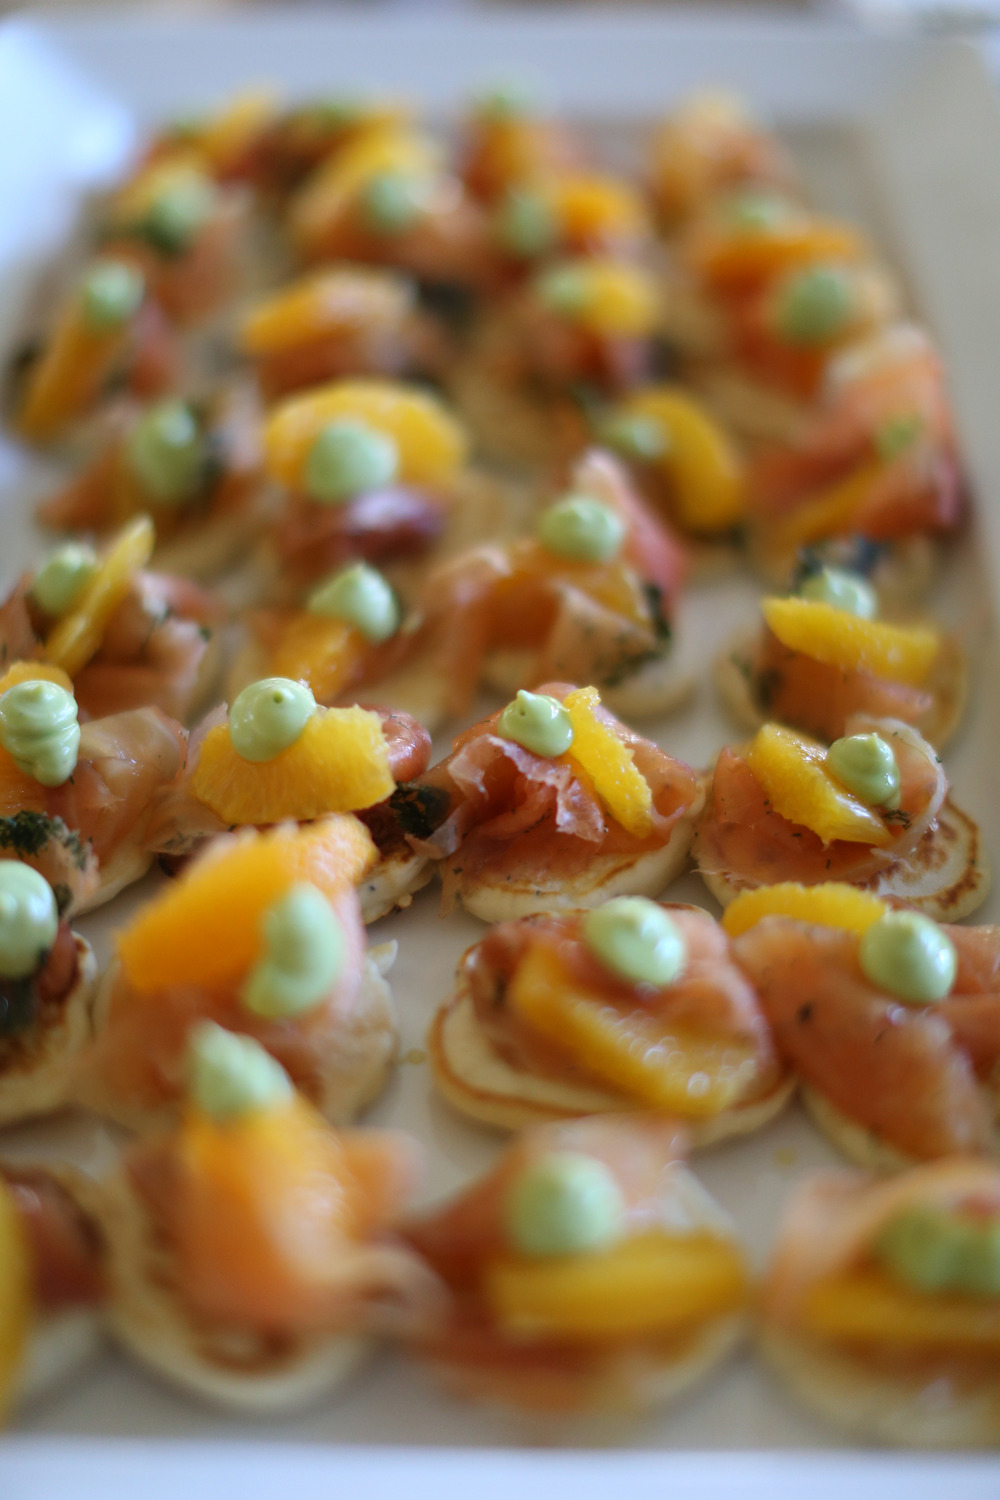 Cured Salmon & Poppyseed Pancake Canapes, with avocado mousse and orange segments